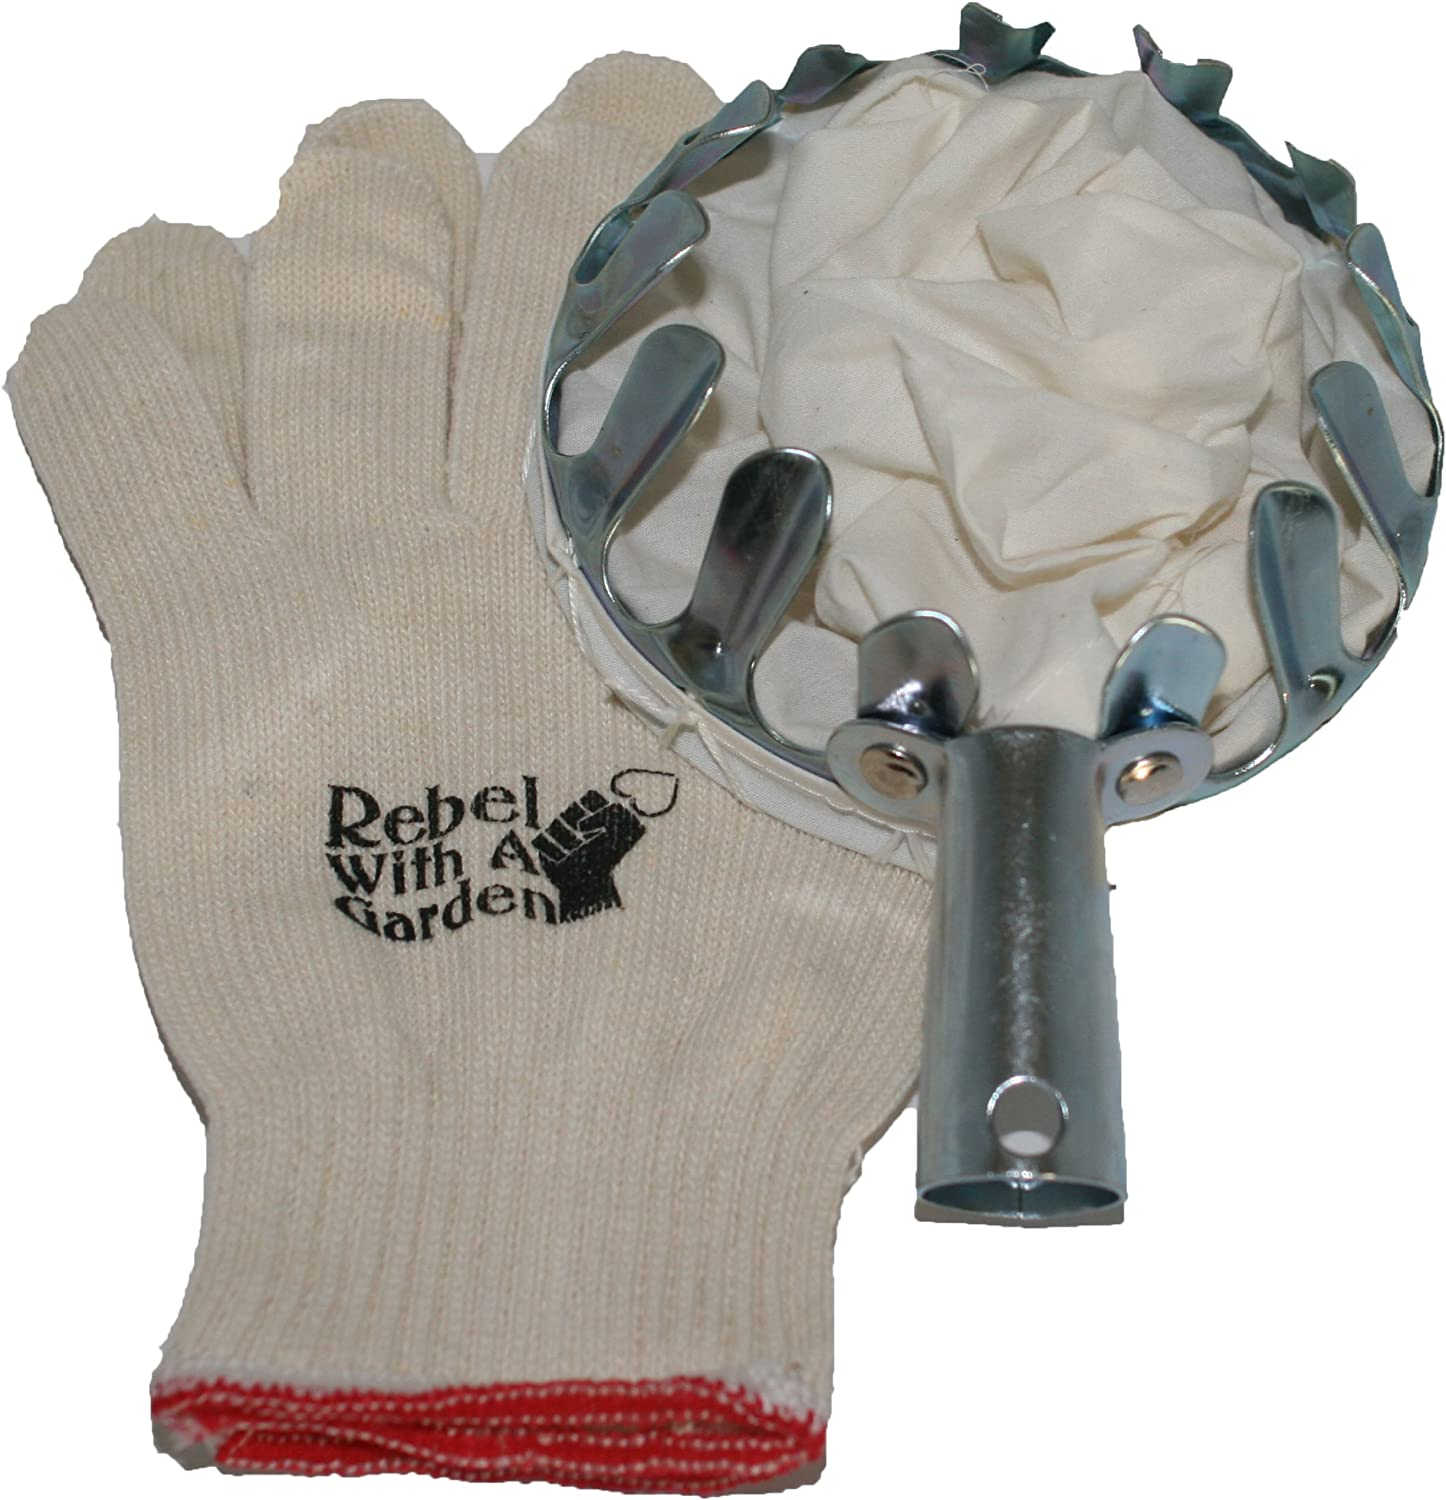 Rebel With A Garden Long Armed Rebel Fruit Picker Basket Tool for Picking Apples, Peaches, Pears, Plums and Apricots with Bonus Cotton Gloves